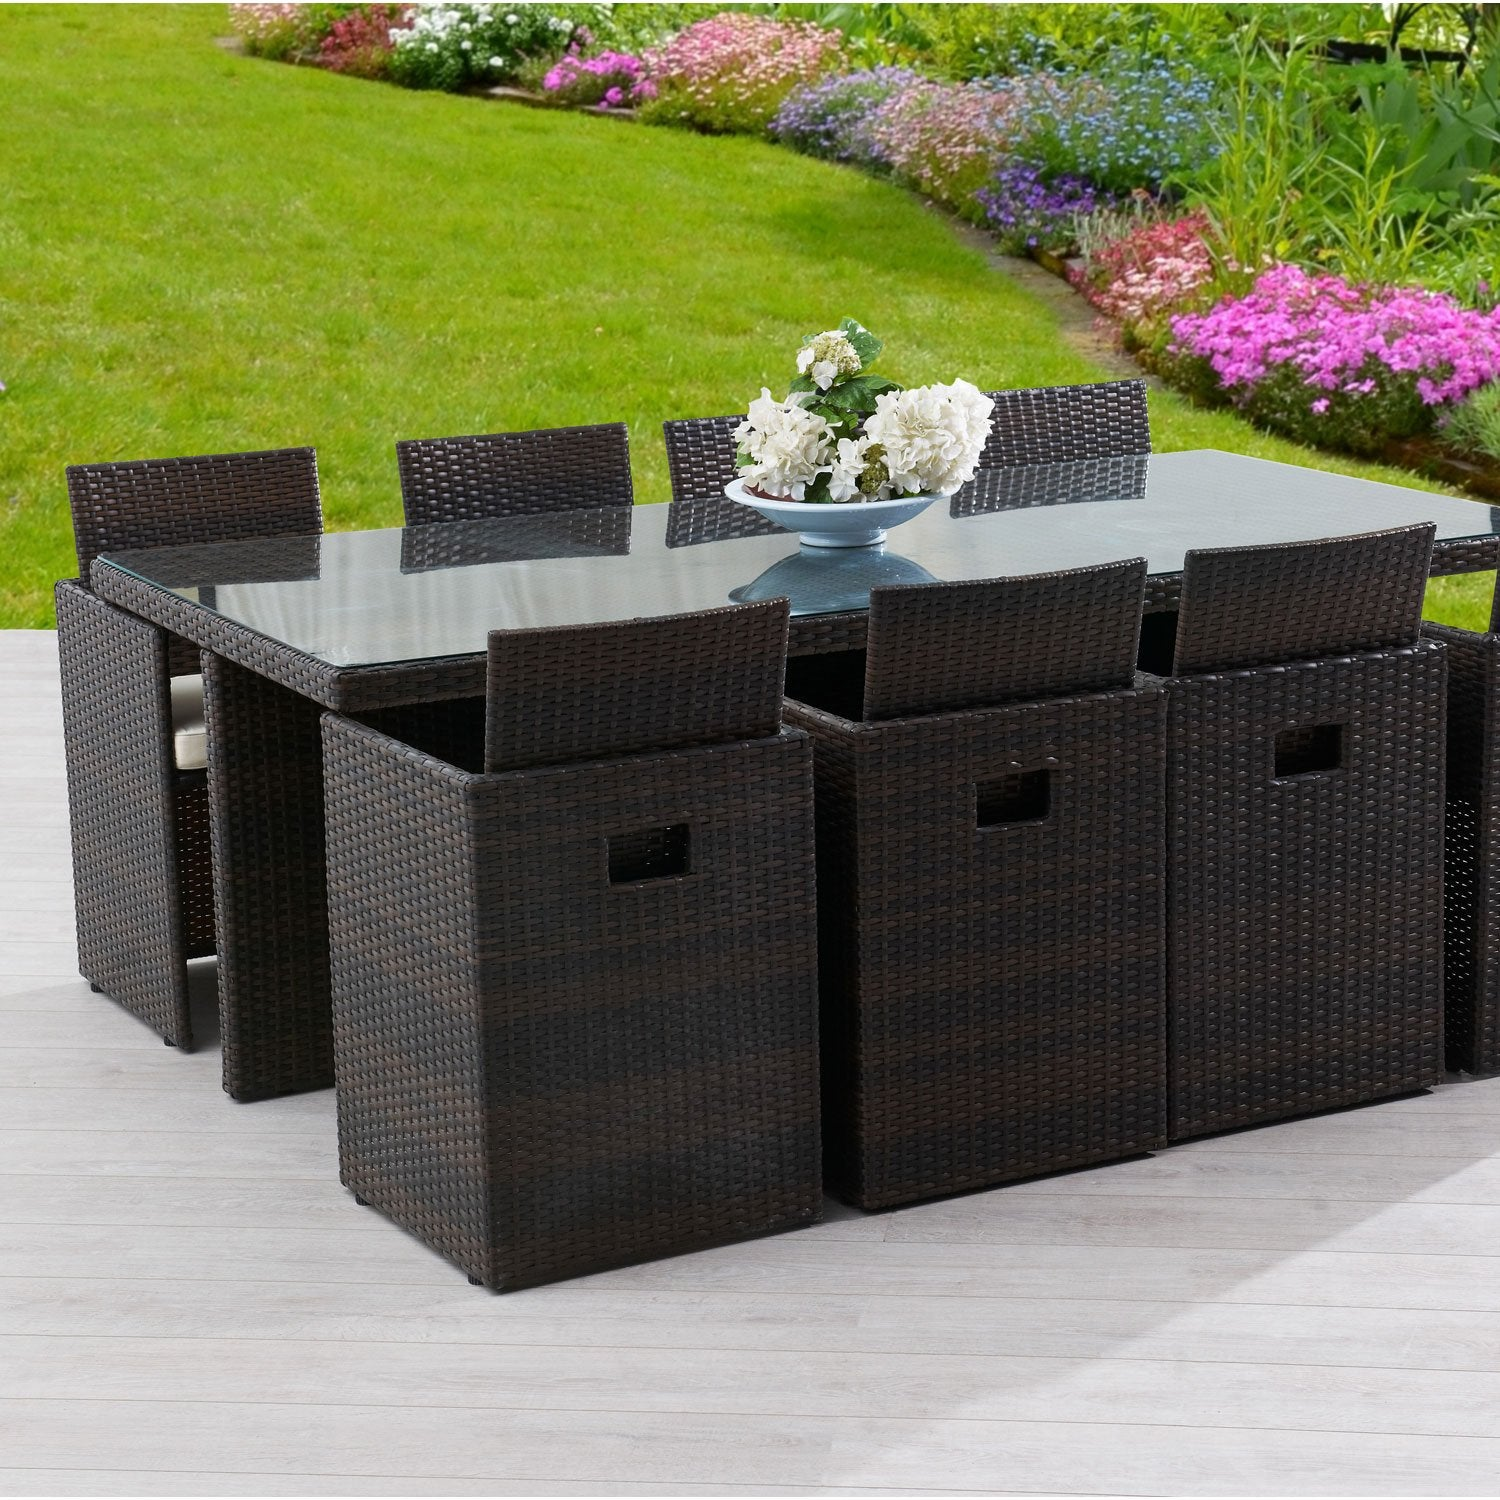 Salon de jardin leroy merlin - Leroy merlin table jardin ...